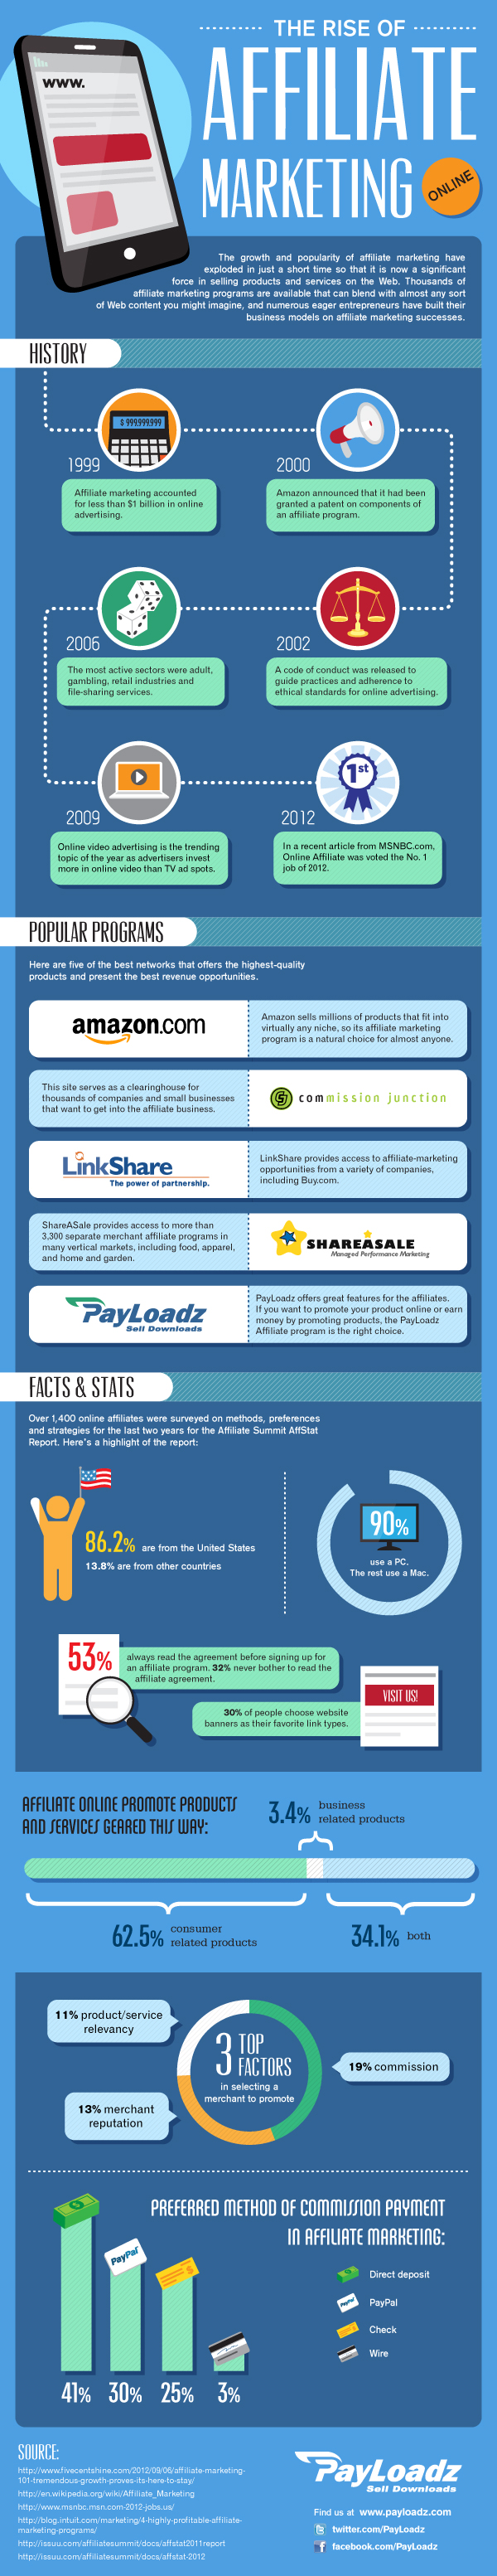 Affiliate Marketing The Rise of Affiliate Marketing Online Infographic